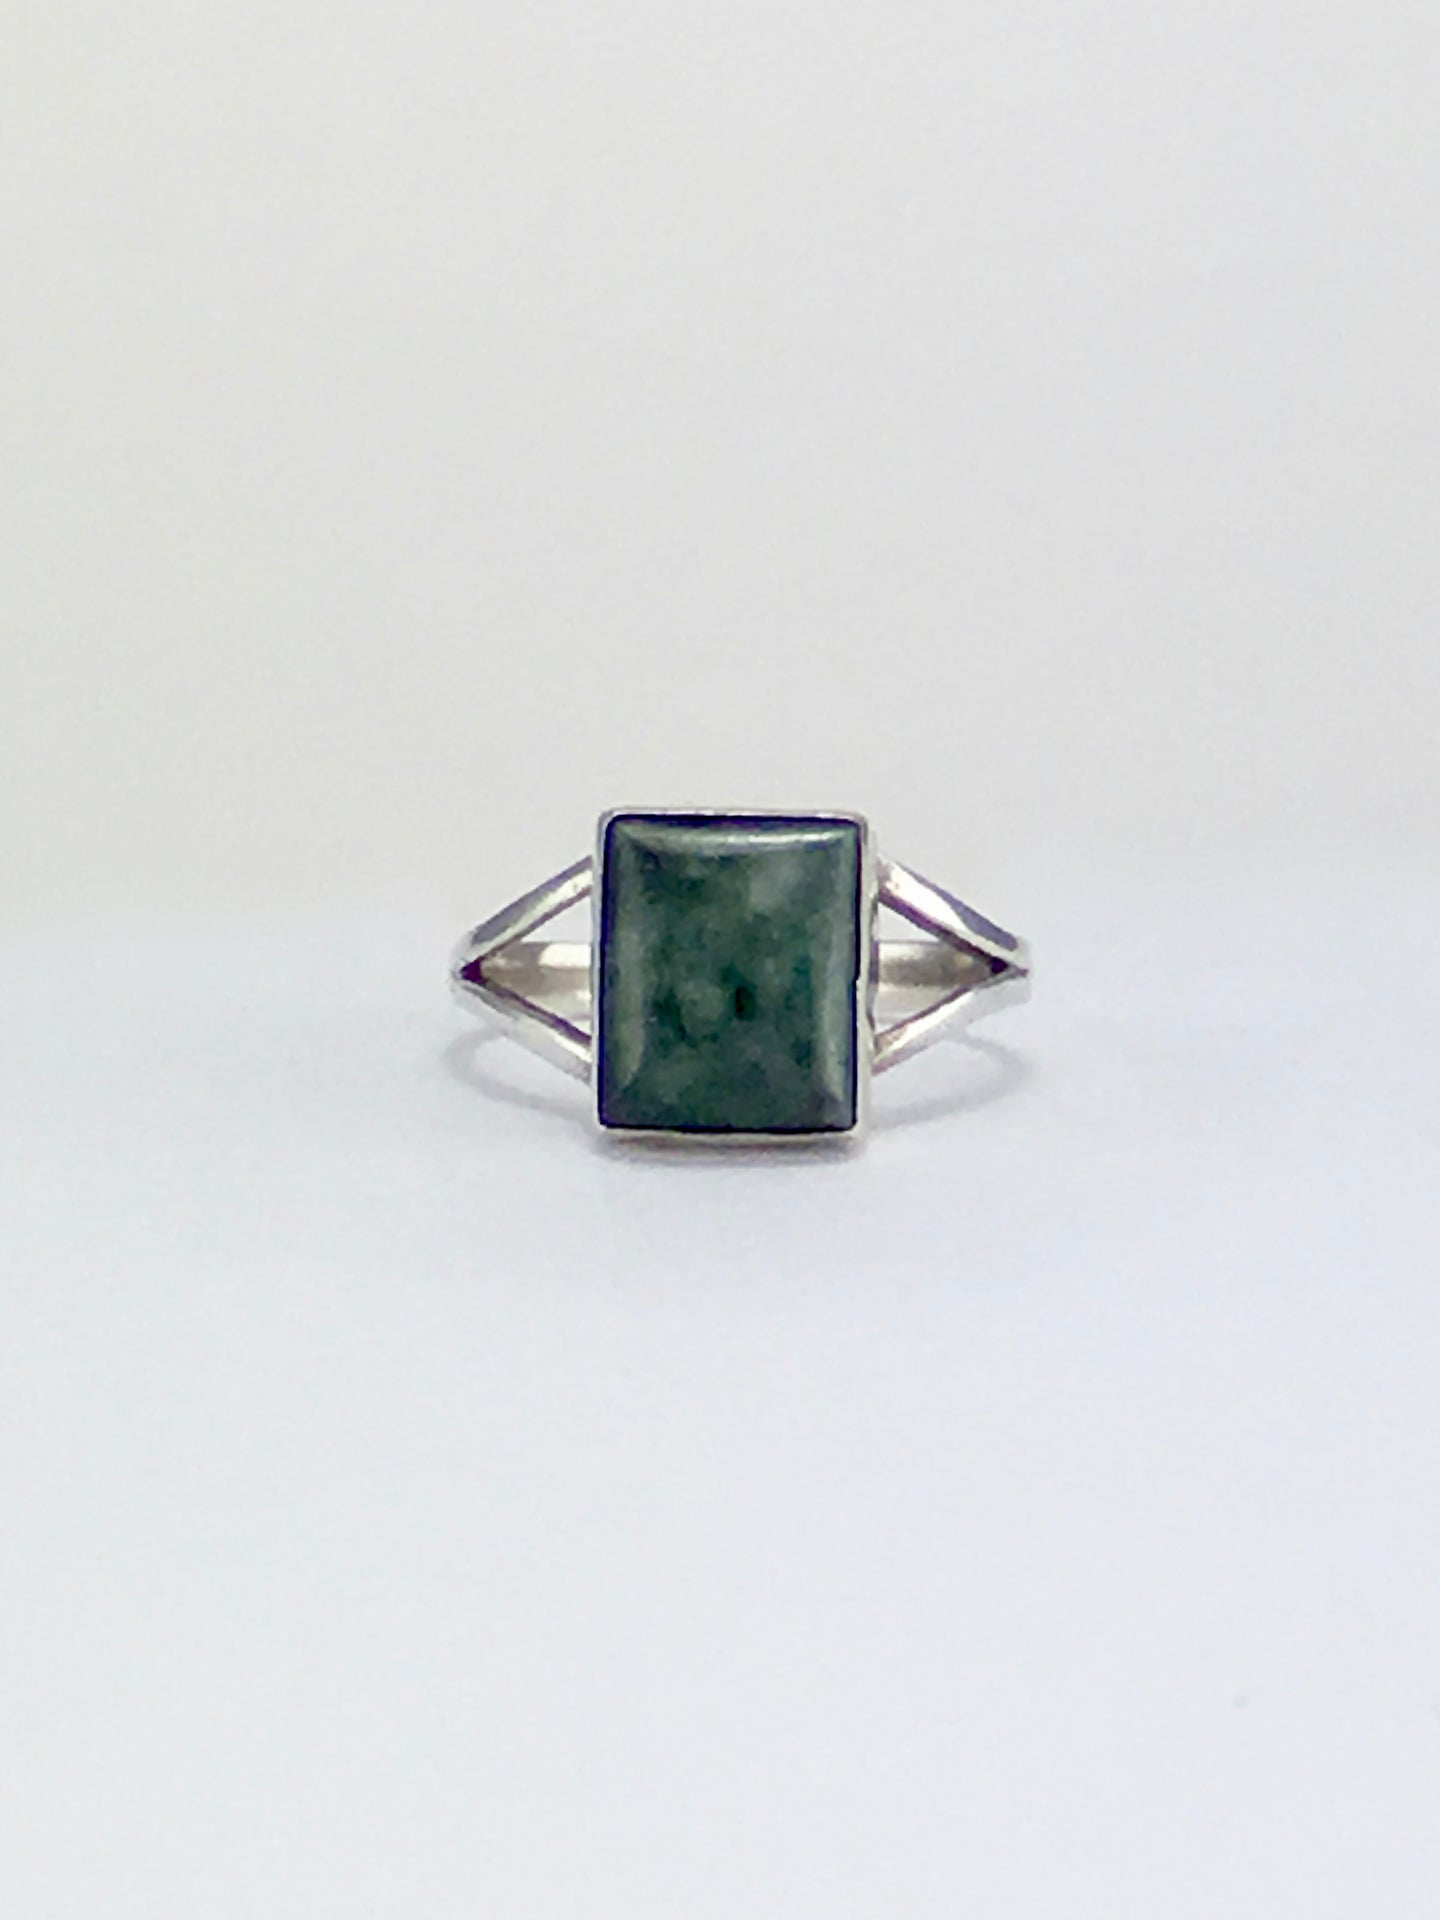 Square cabochon modern jade cocktail ring